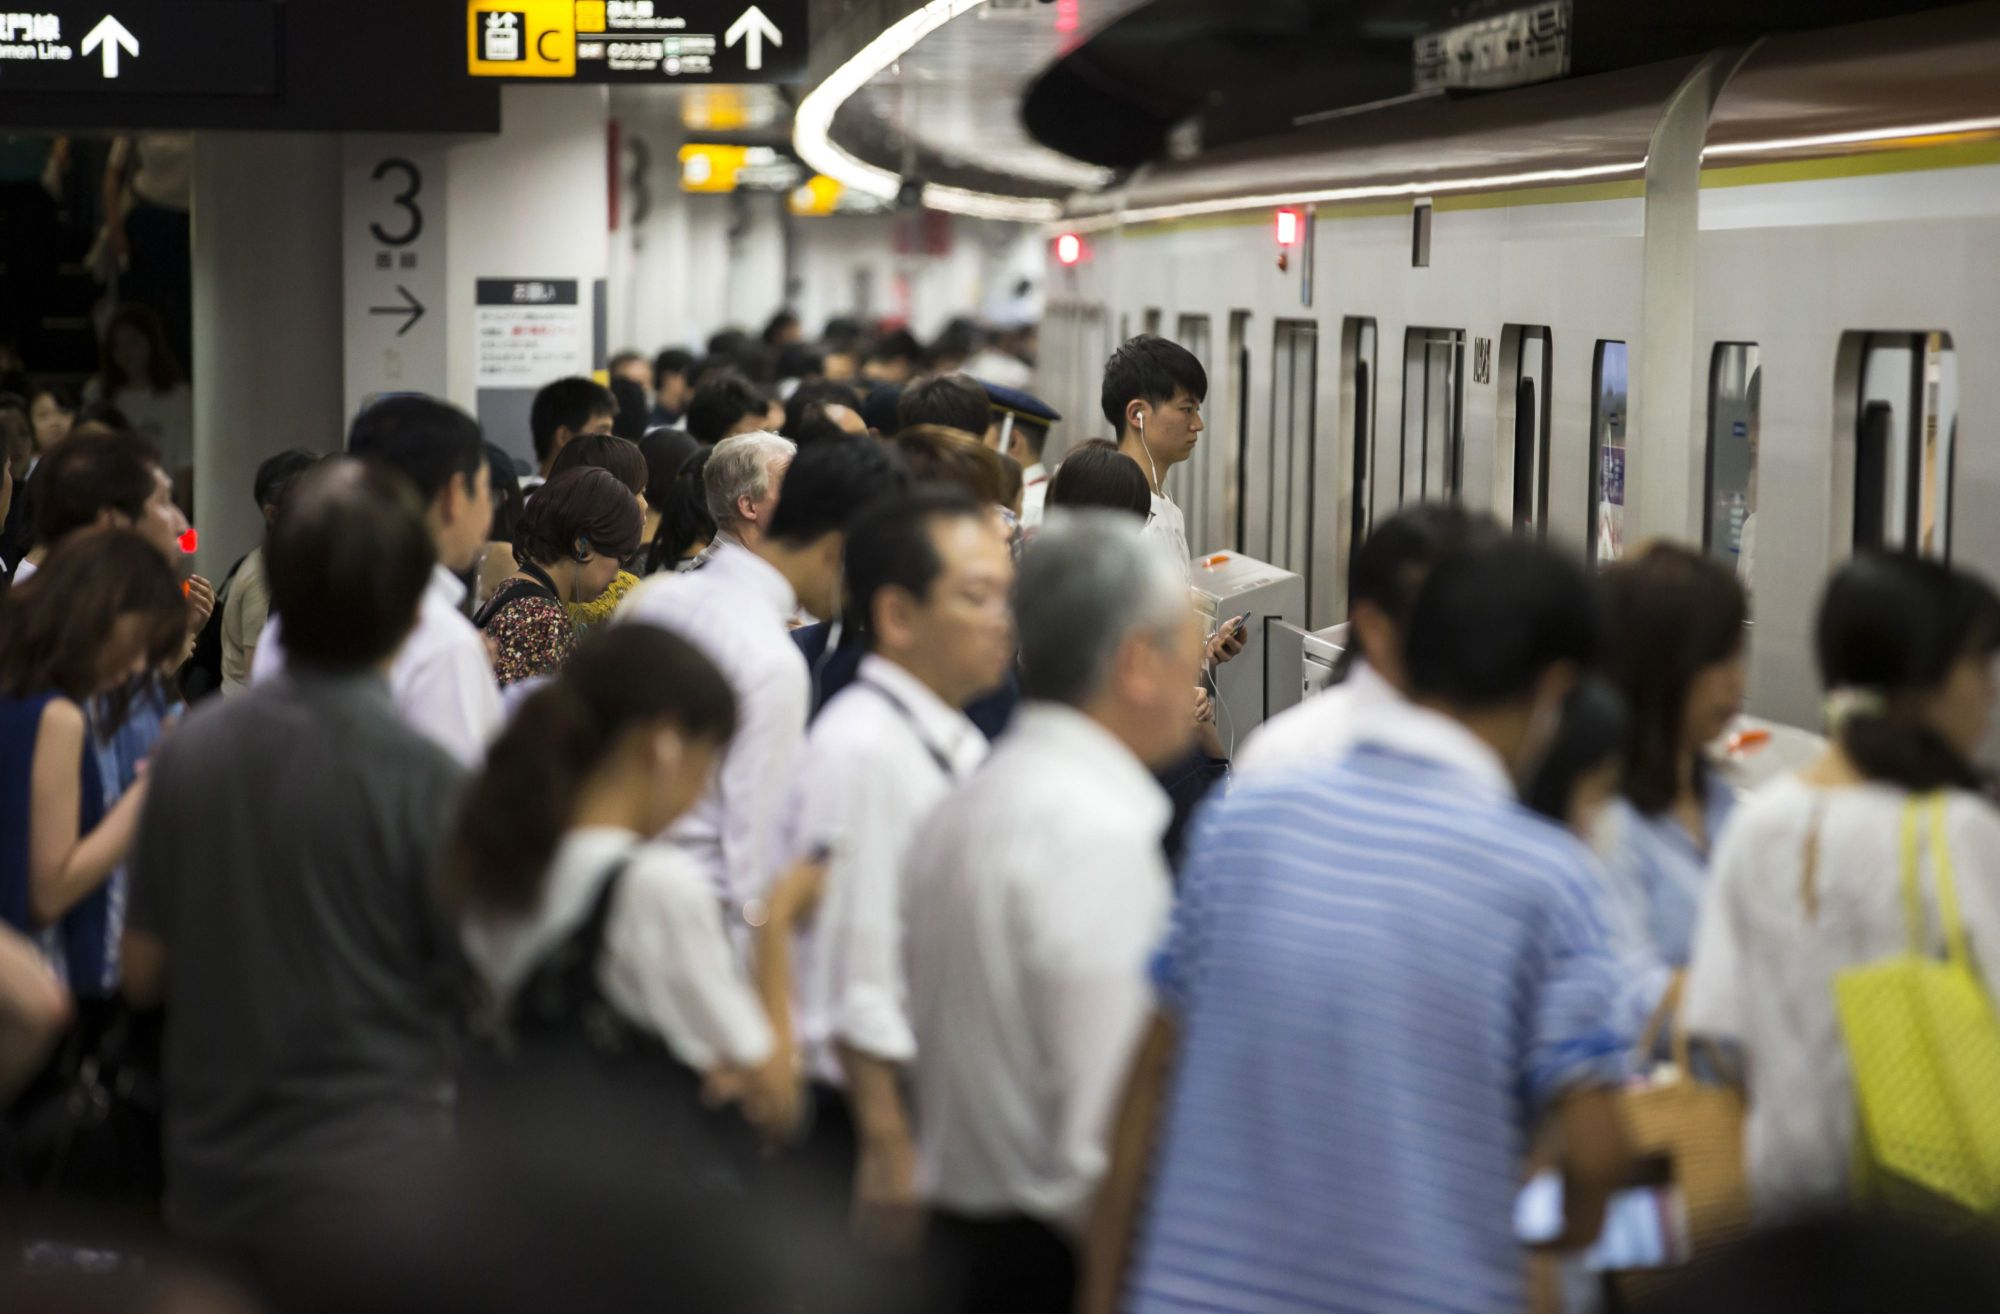 Mitsubishi Chemical Holdings Corp. will take part in a government plan to help reduce traffic congestion during the Olympics and Paralympics by allowing employees to work remotely instead of commuting. | BLOOMBERG